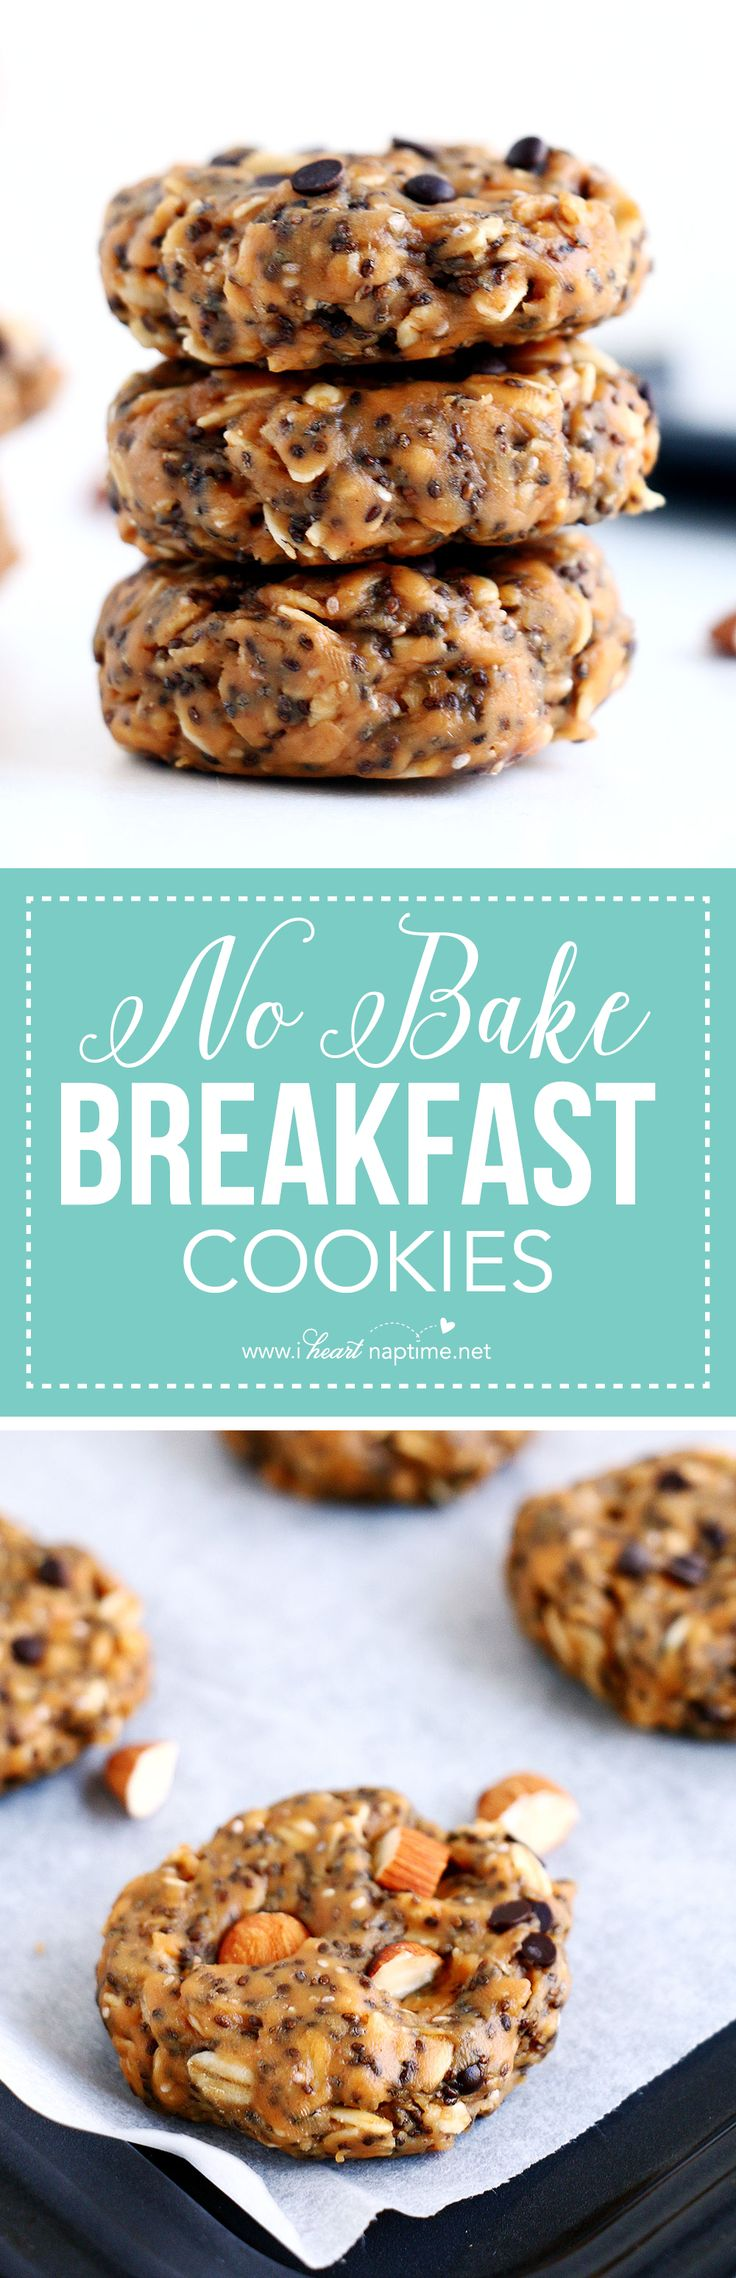 These No Bake Breakfast Cookies are easy to make, healthy, packed with protein, and simply delicious. They can be whipped up in less than 5 minutes!